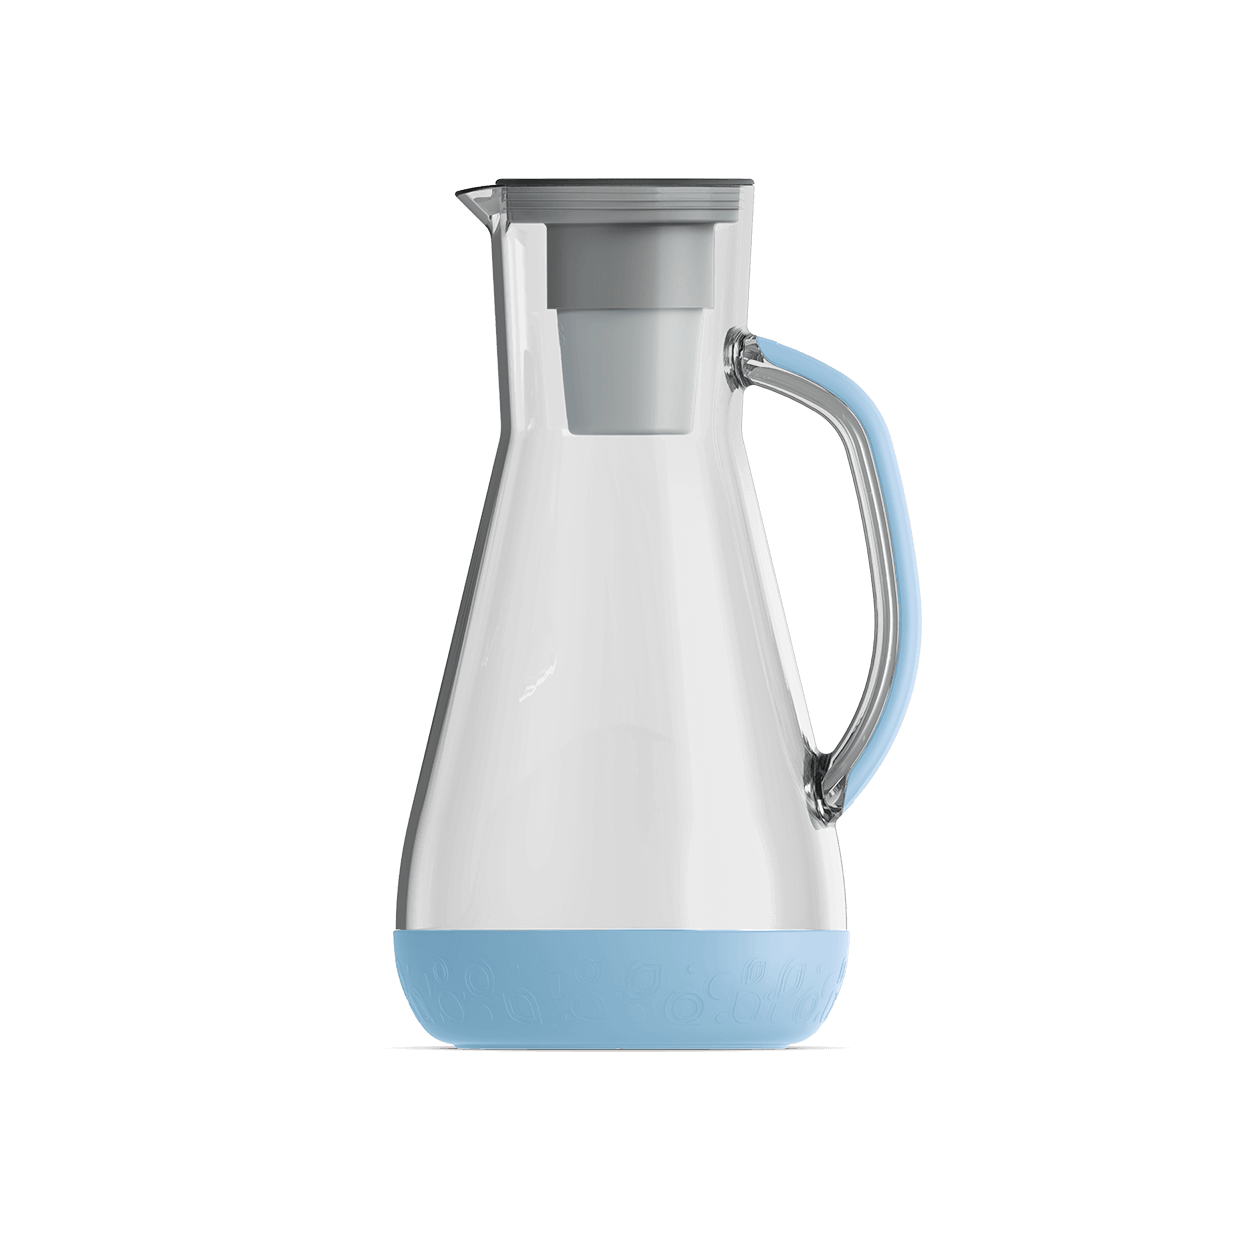 hydros grey 64 oz pitcher filters 8 cups in about 1 minute hydros. Black Bedroom Furniture Sets. Home Design Ideas